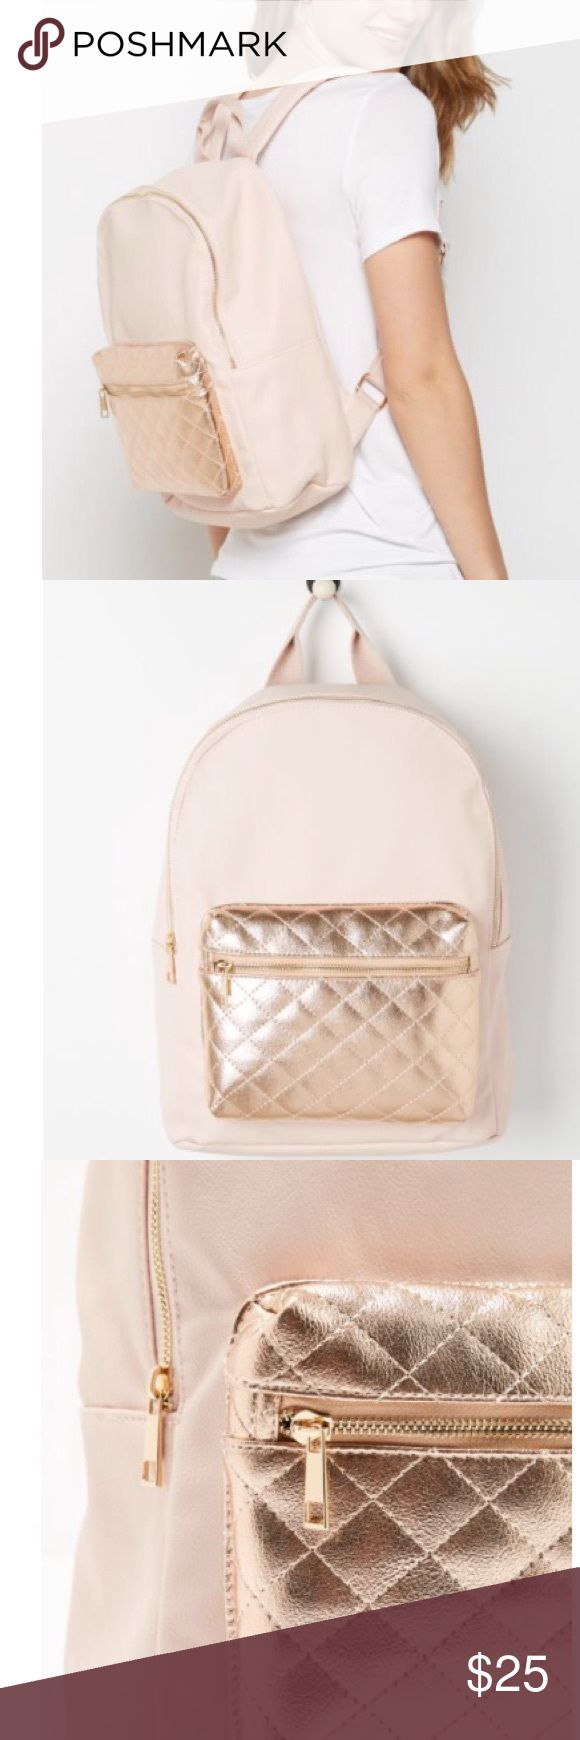 Pink and rose gold backpack Faux leather backpack with rose gold pouch pocket in quilted metallic vinyl. Base approx:5 x 12 in, height approx 14 in, adjustable shoulder straps, zip closure, inside zip compartment. We are a non smoking home. Bags Backpacks